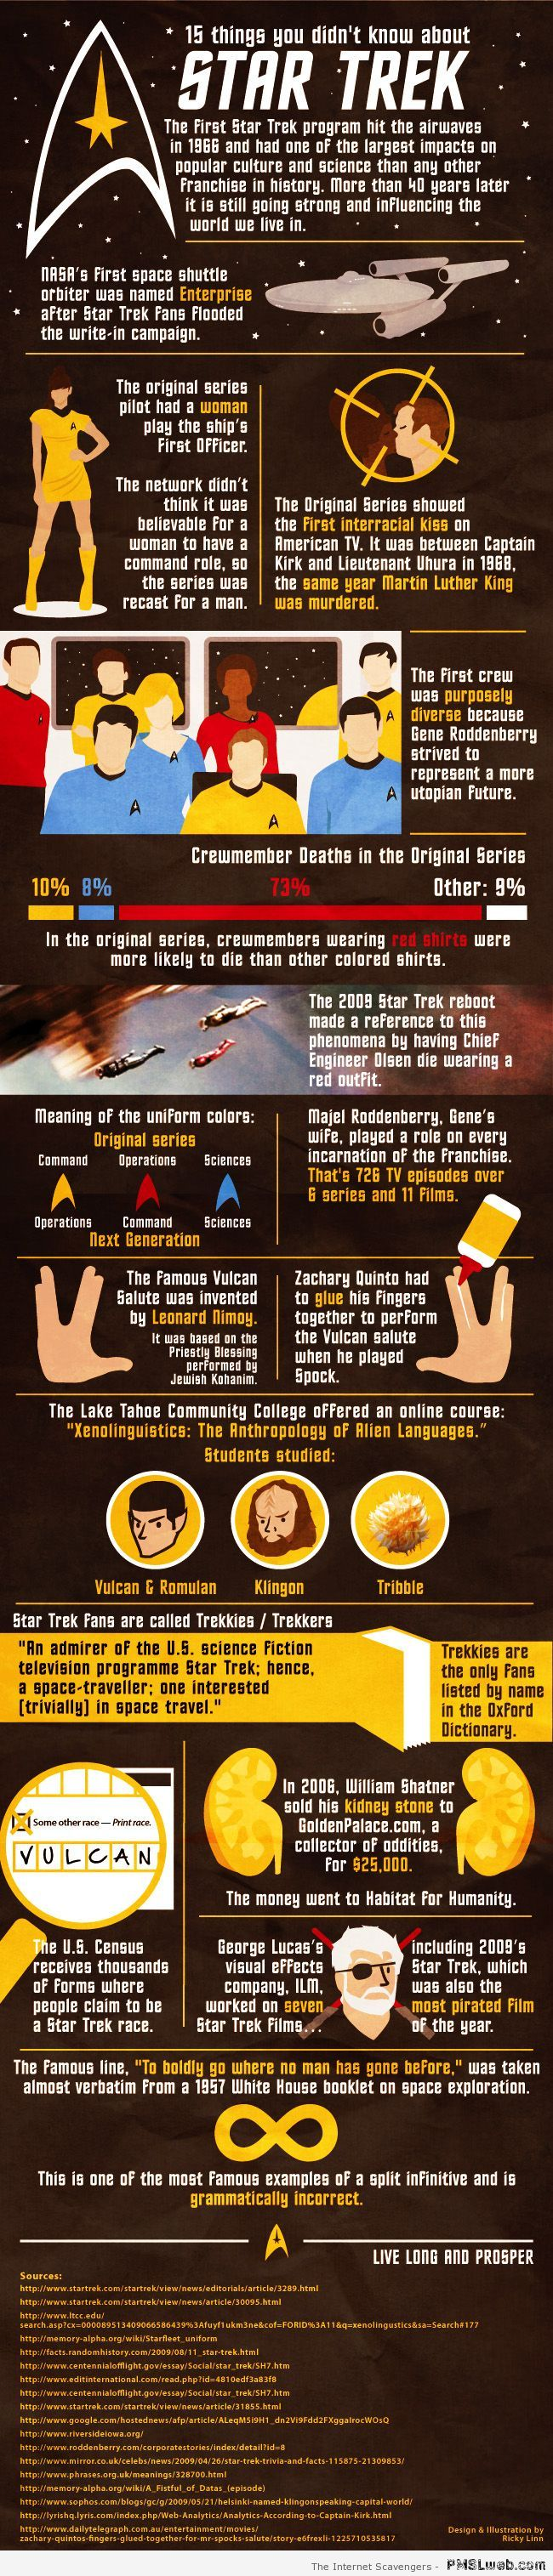 Star trek facts at PMSLweb.com